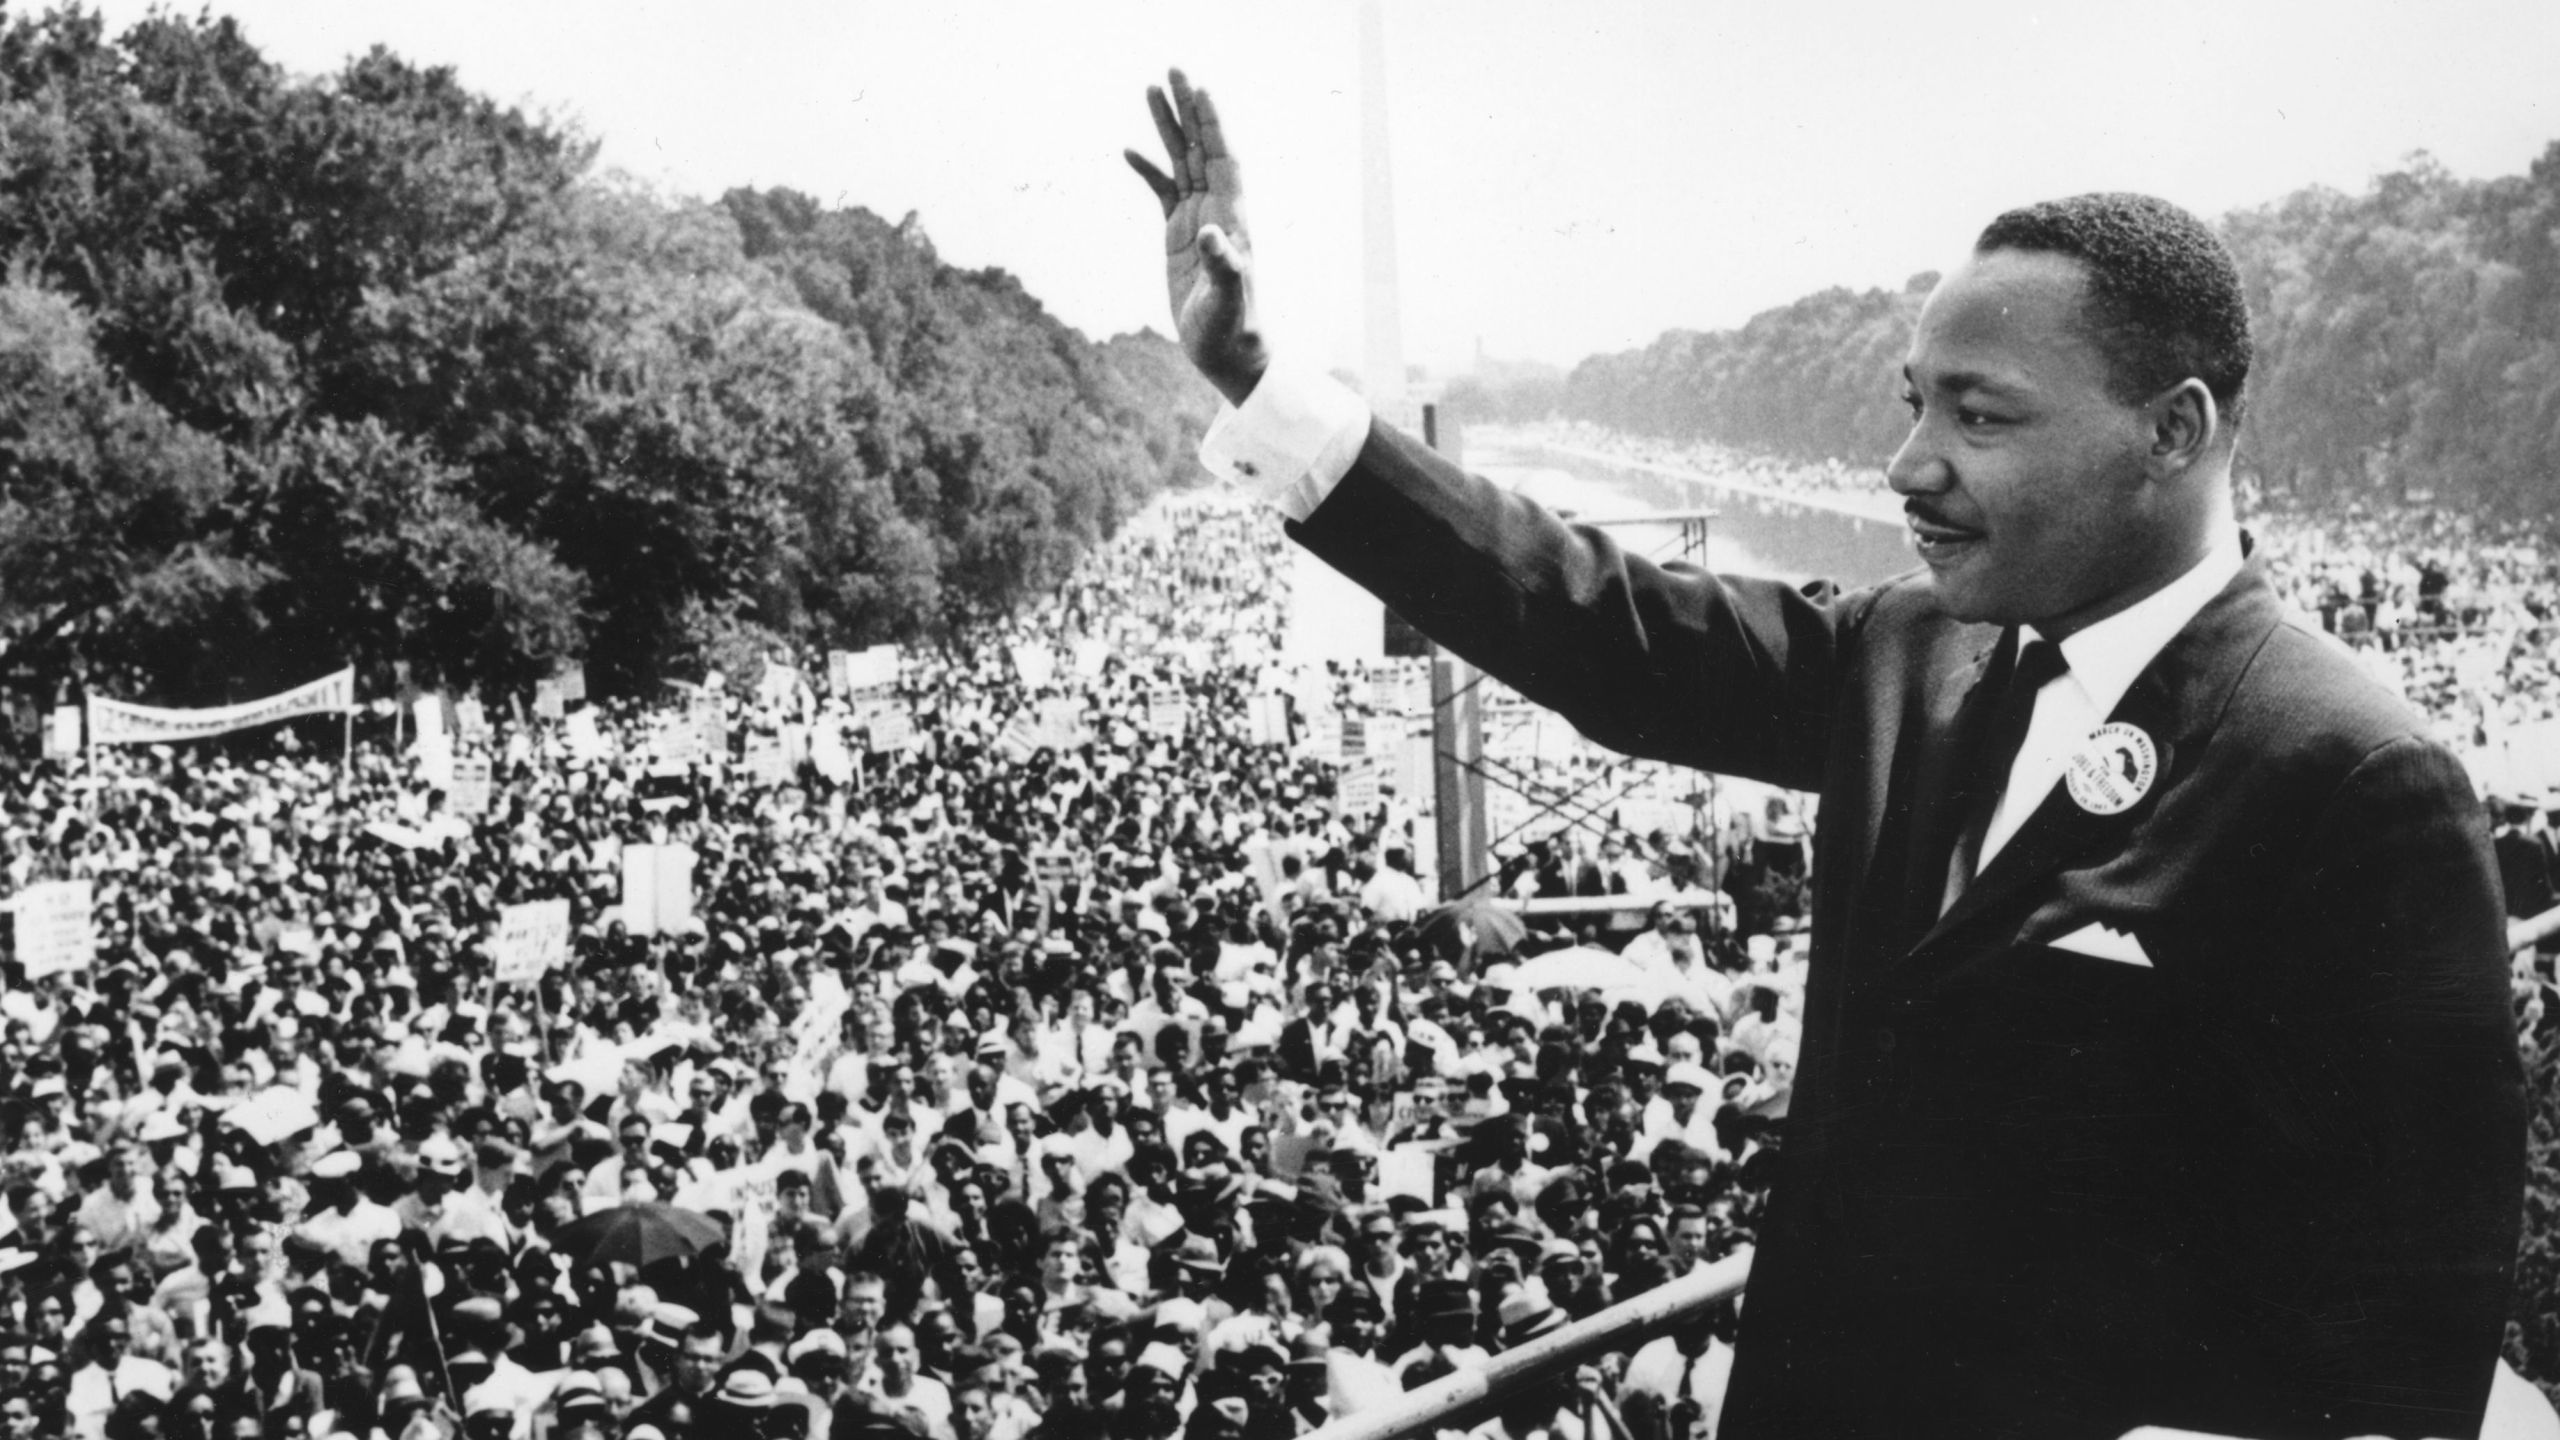 Civil rights leader Martin Luther King Jr. (1929 - 1968) addresses crowds during the March On Washington at the Lincoln Memorial, Washington DC, where he gave his 'I Have A Dream' speech. (Credit: Central Press/Getty Images)